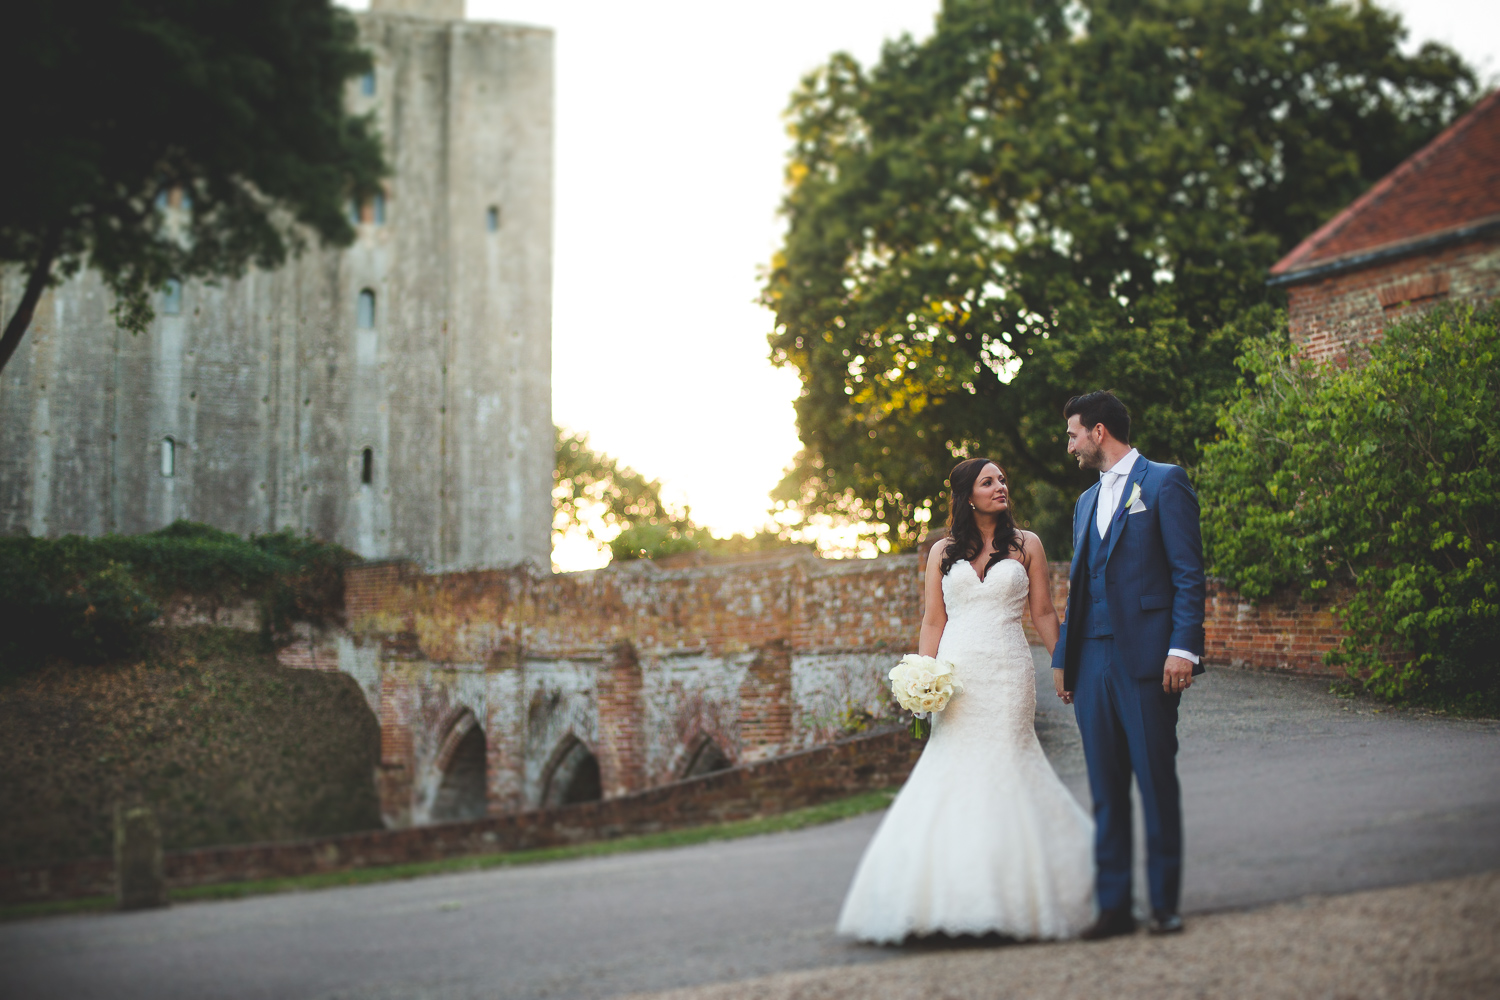 Surrey Wedding Photographer Hedingham Castle095.jpg